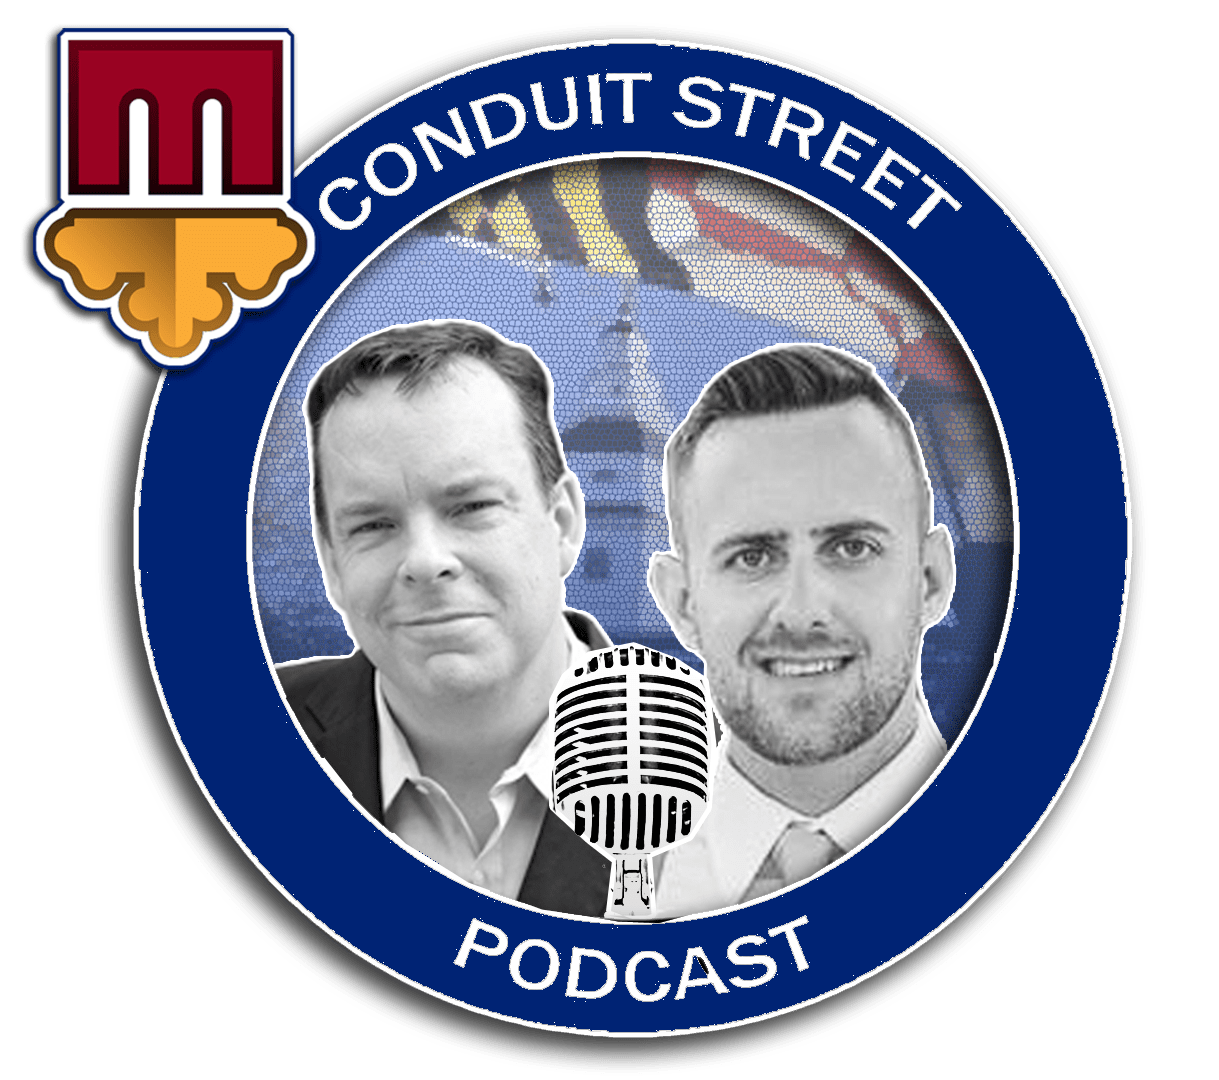 Conduit Street Podcast: 2019 Session Preview